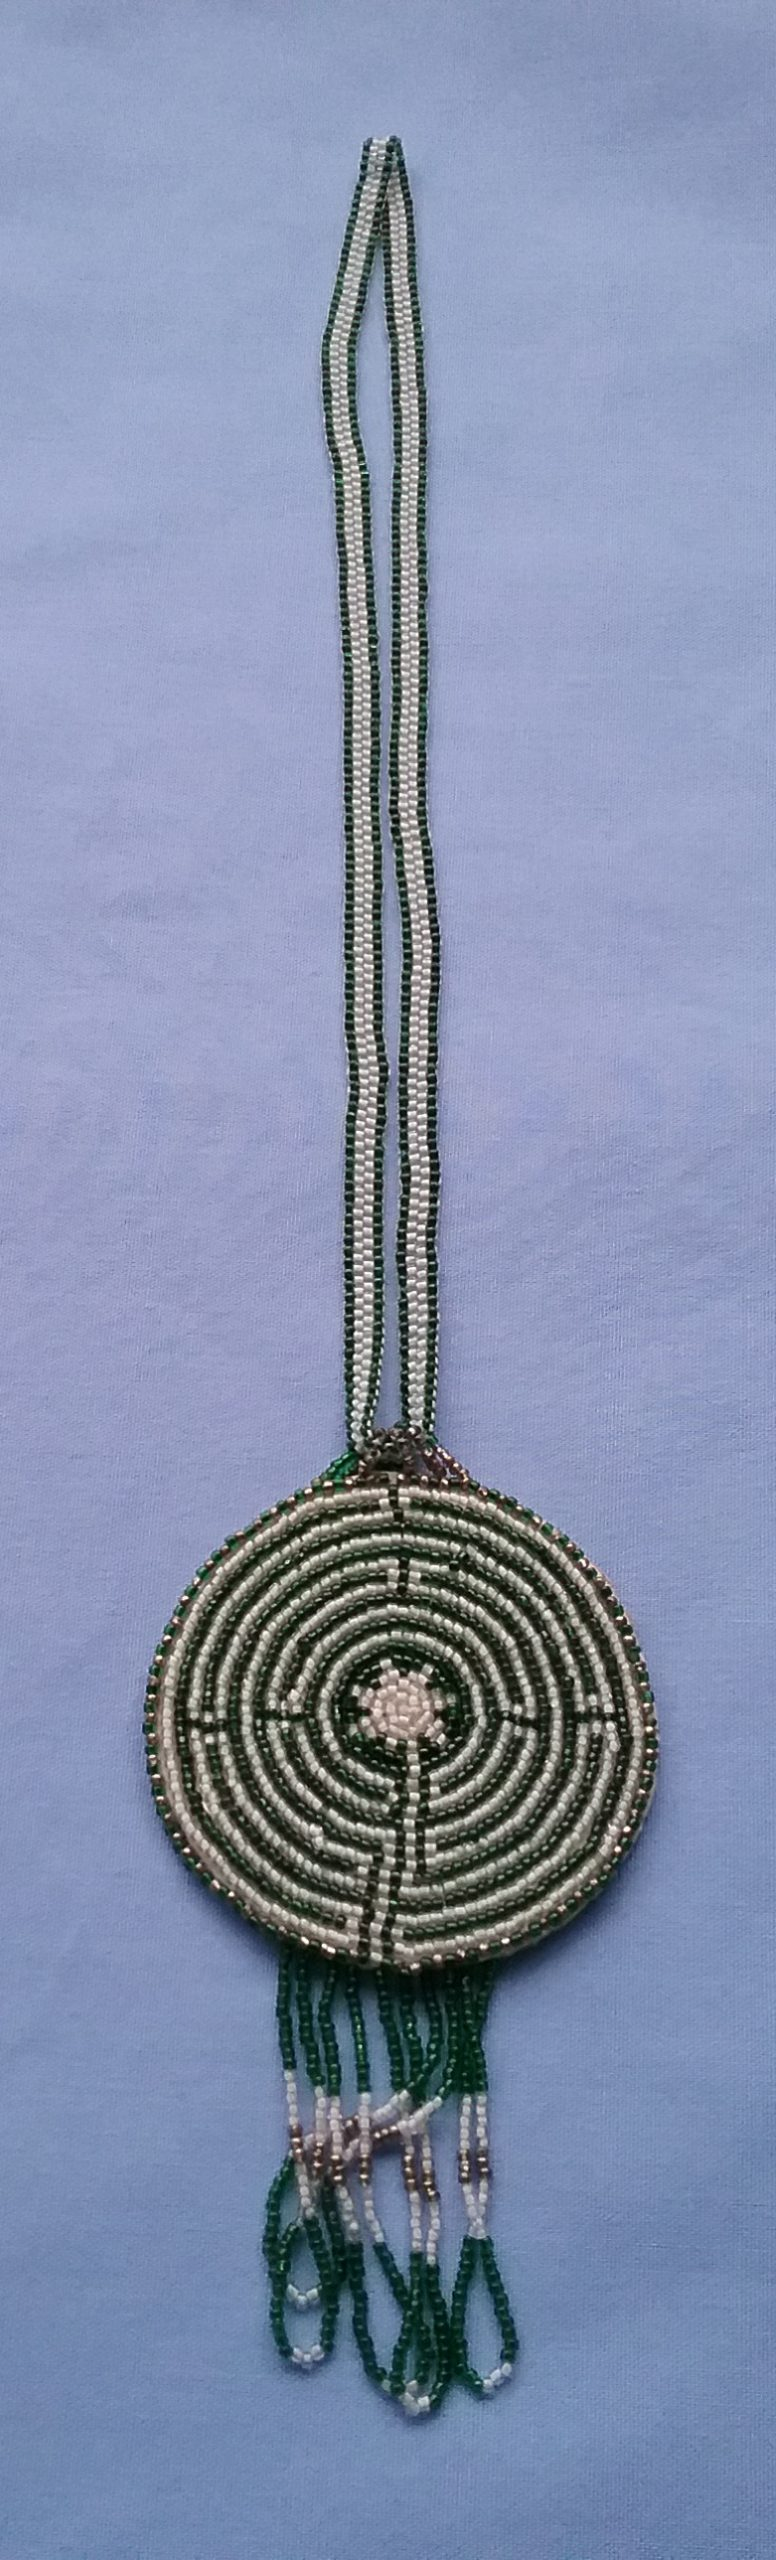 Labyrinth Necklace: Made by Sister Carol Schmit, OSF, this necklace features a beaded medallion with the eleven-circuit design of the labyrinth at Chartres Cathedral in France. The green color is meant to remind people of the healing power of walking the earth. On loan from the artist.